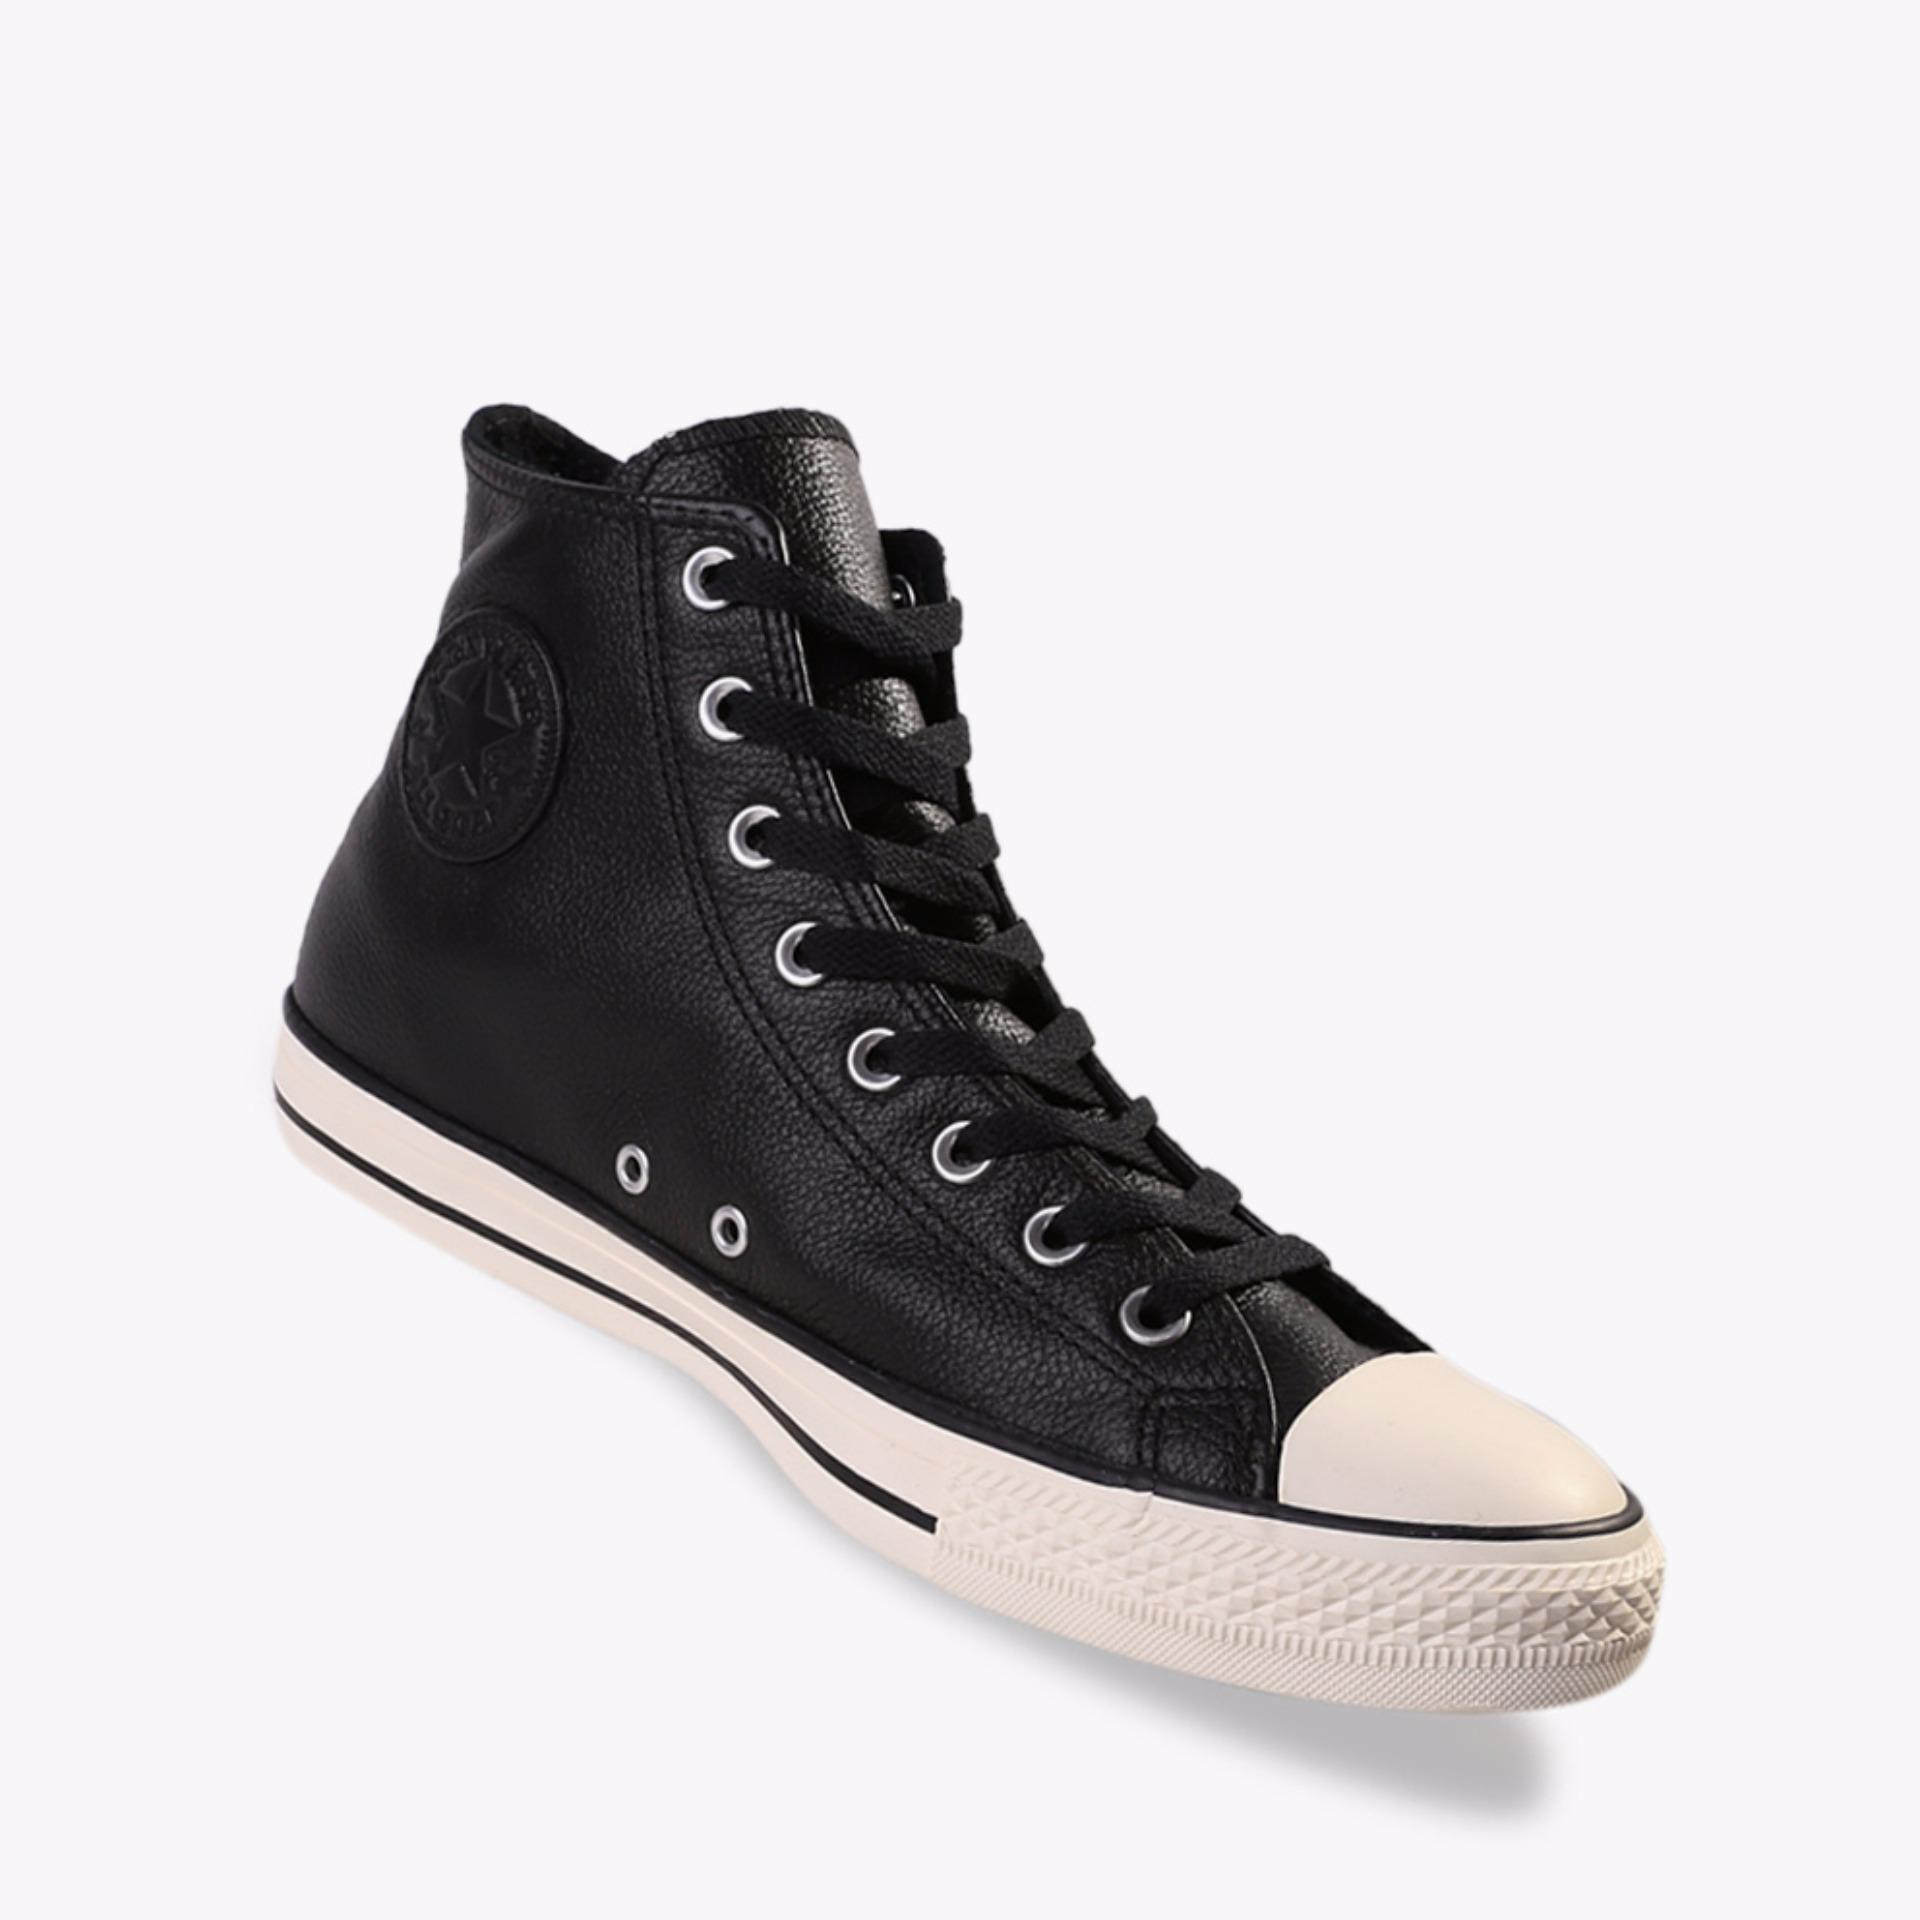 Harga Converse Chuck Taylor All Star Tumbled Leather Men S Sneakers Shoes Hitam Online Indonesia